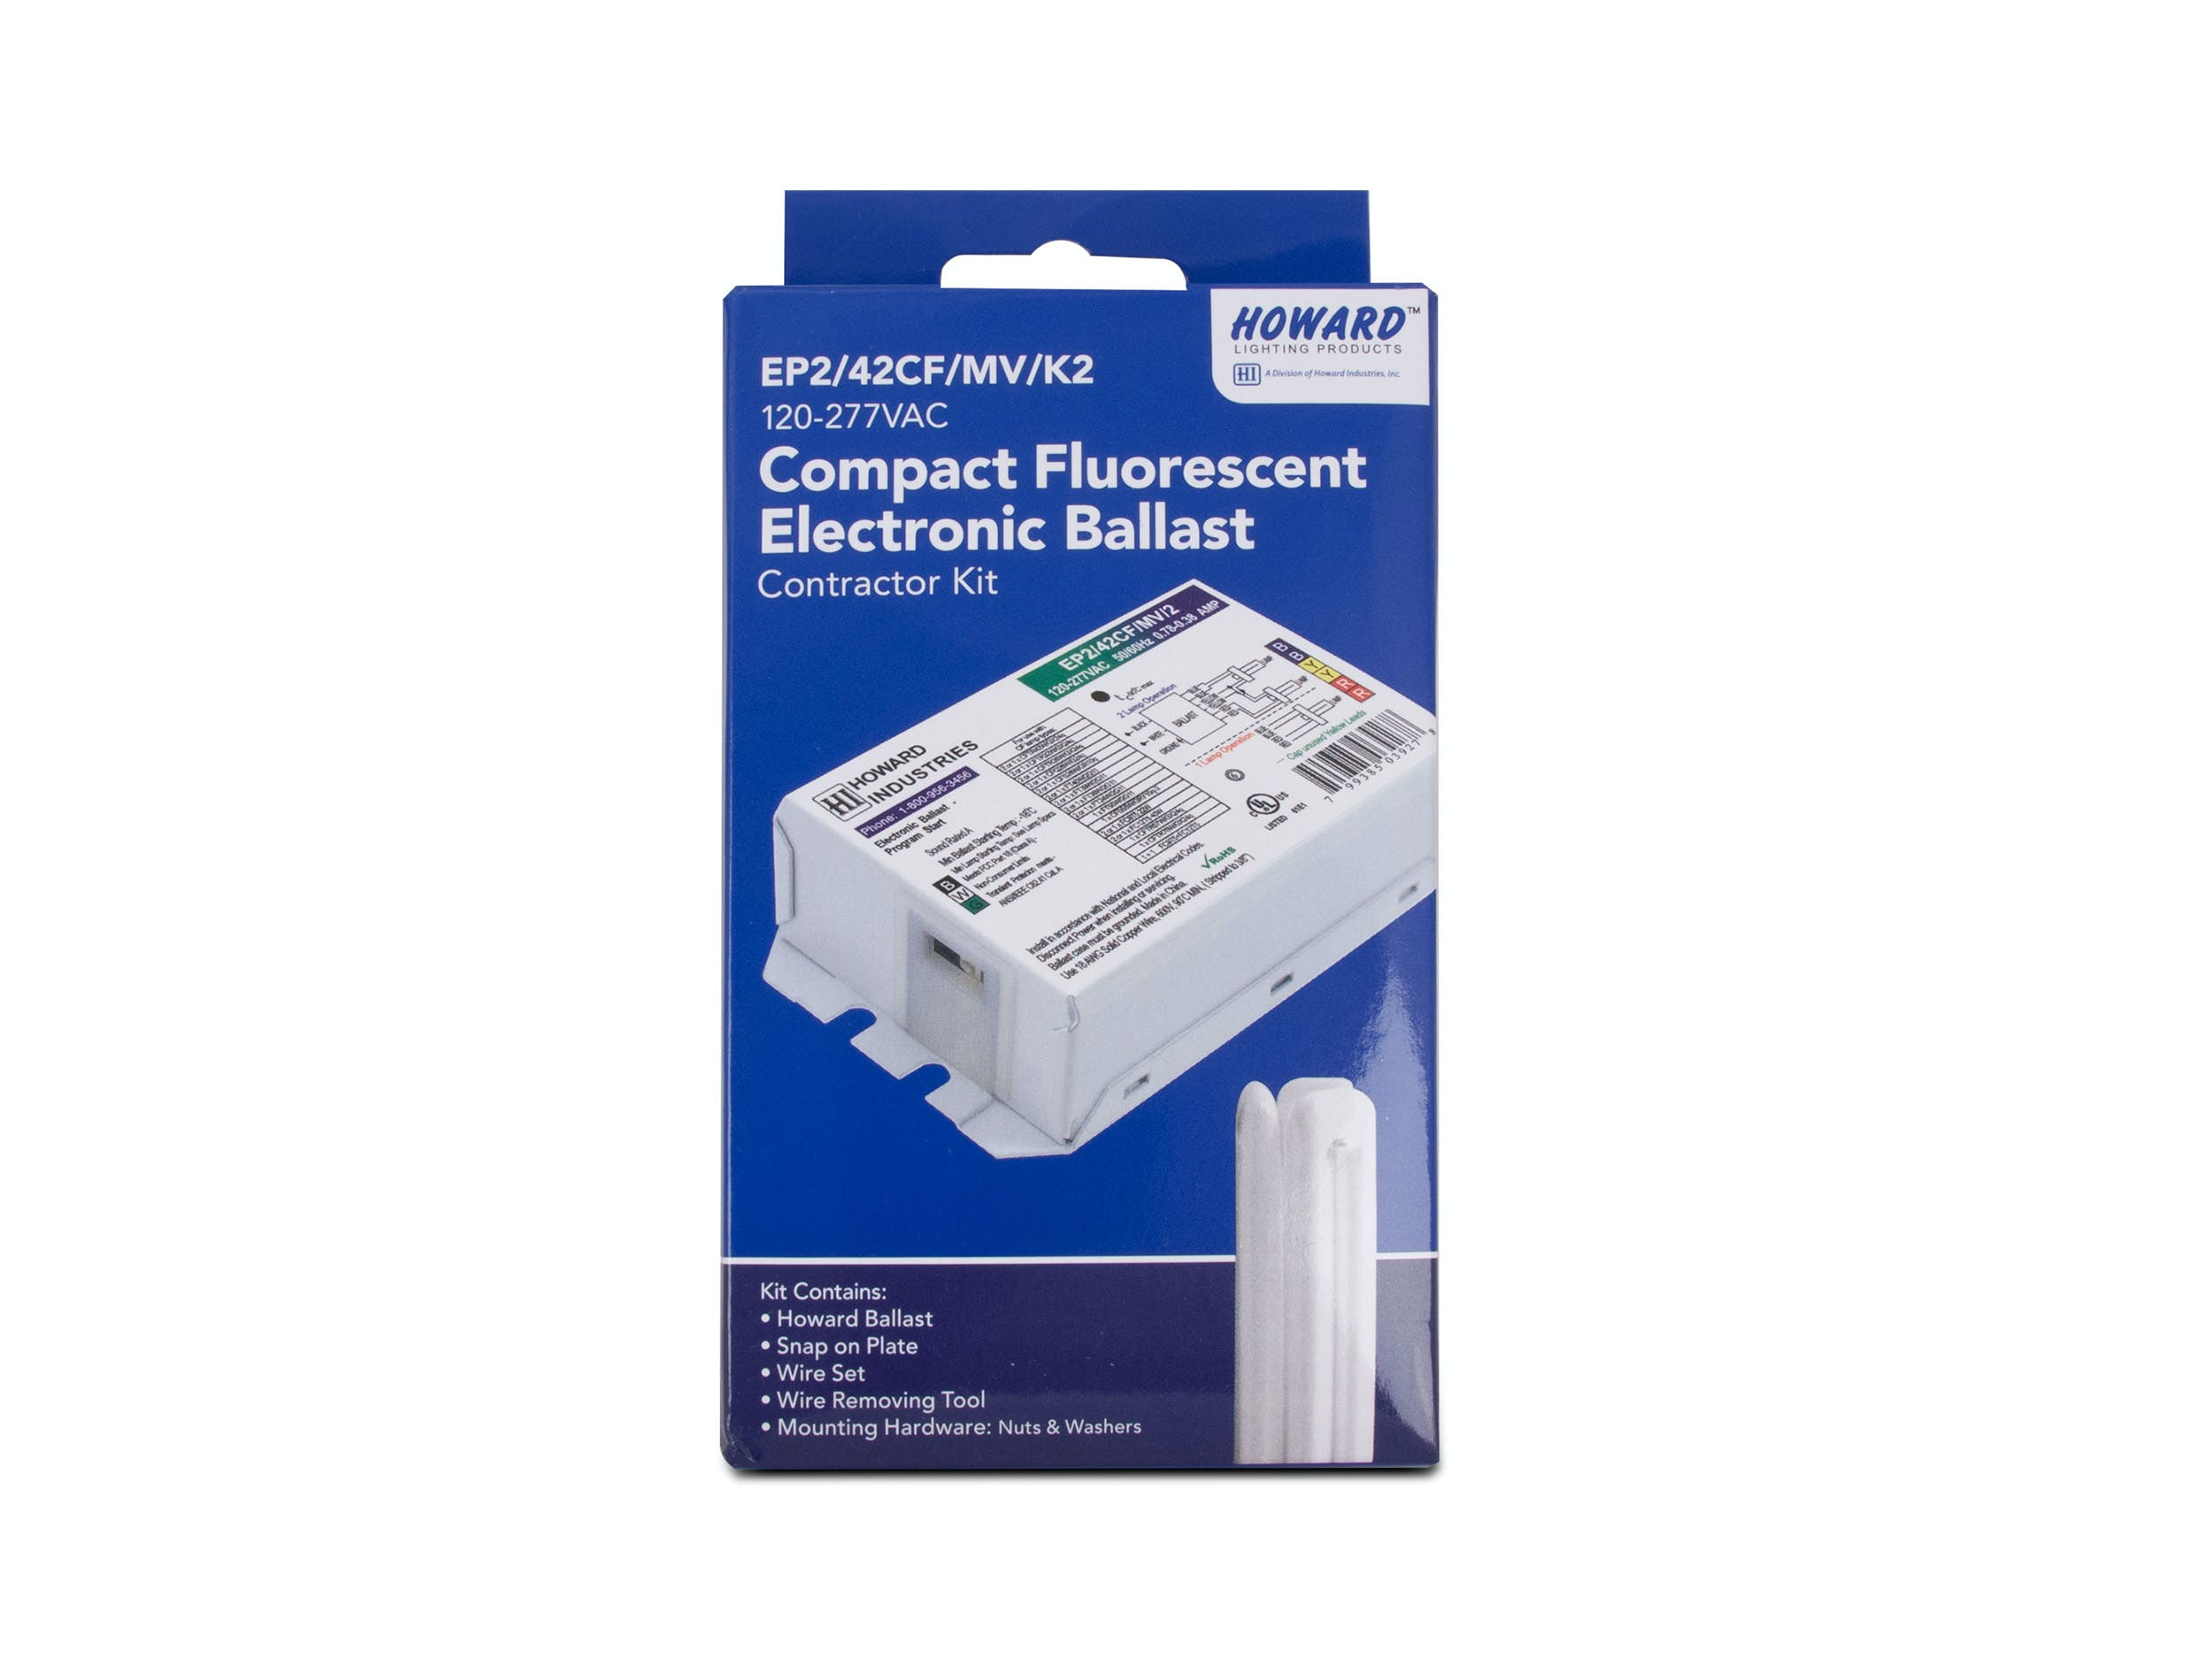 2 Lamp Electronic Compact Fluorescent Ballast - EP2/42CF/MV/K2 - sold by RelightDepot.com